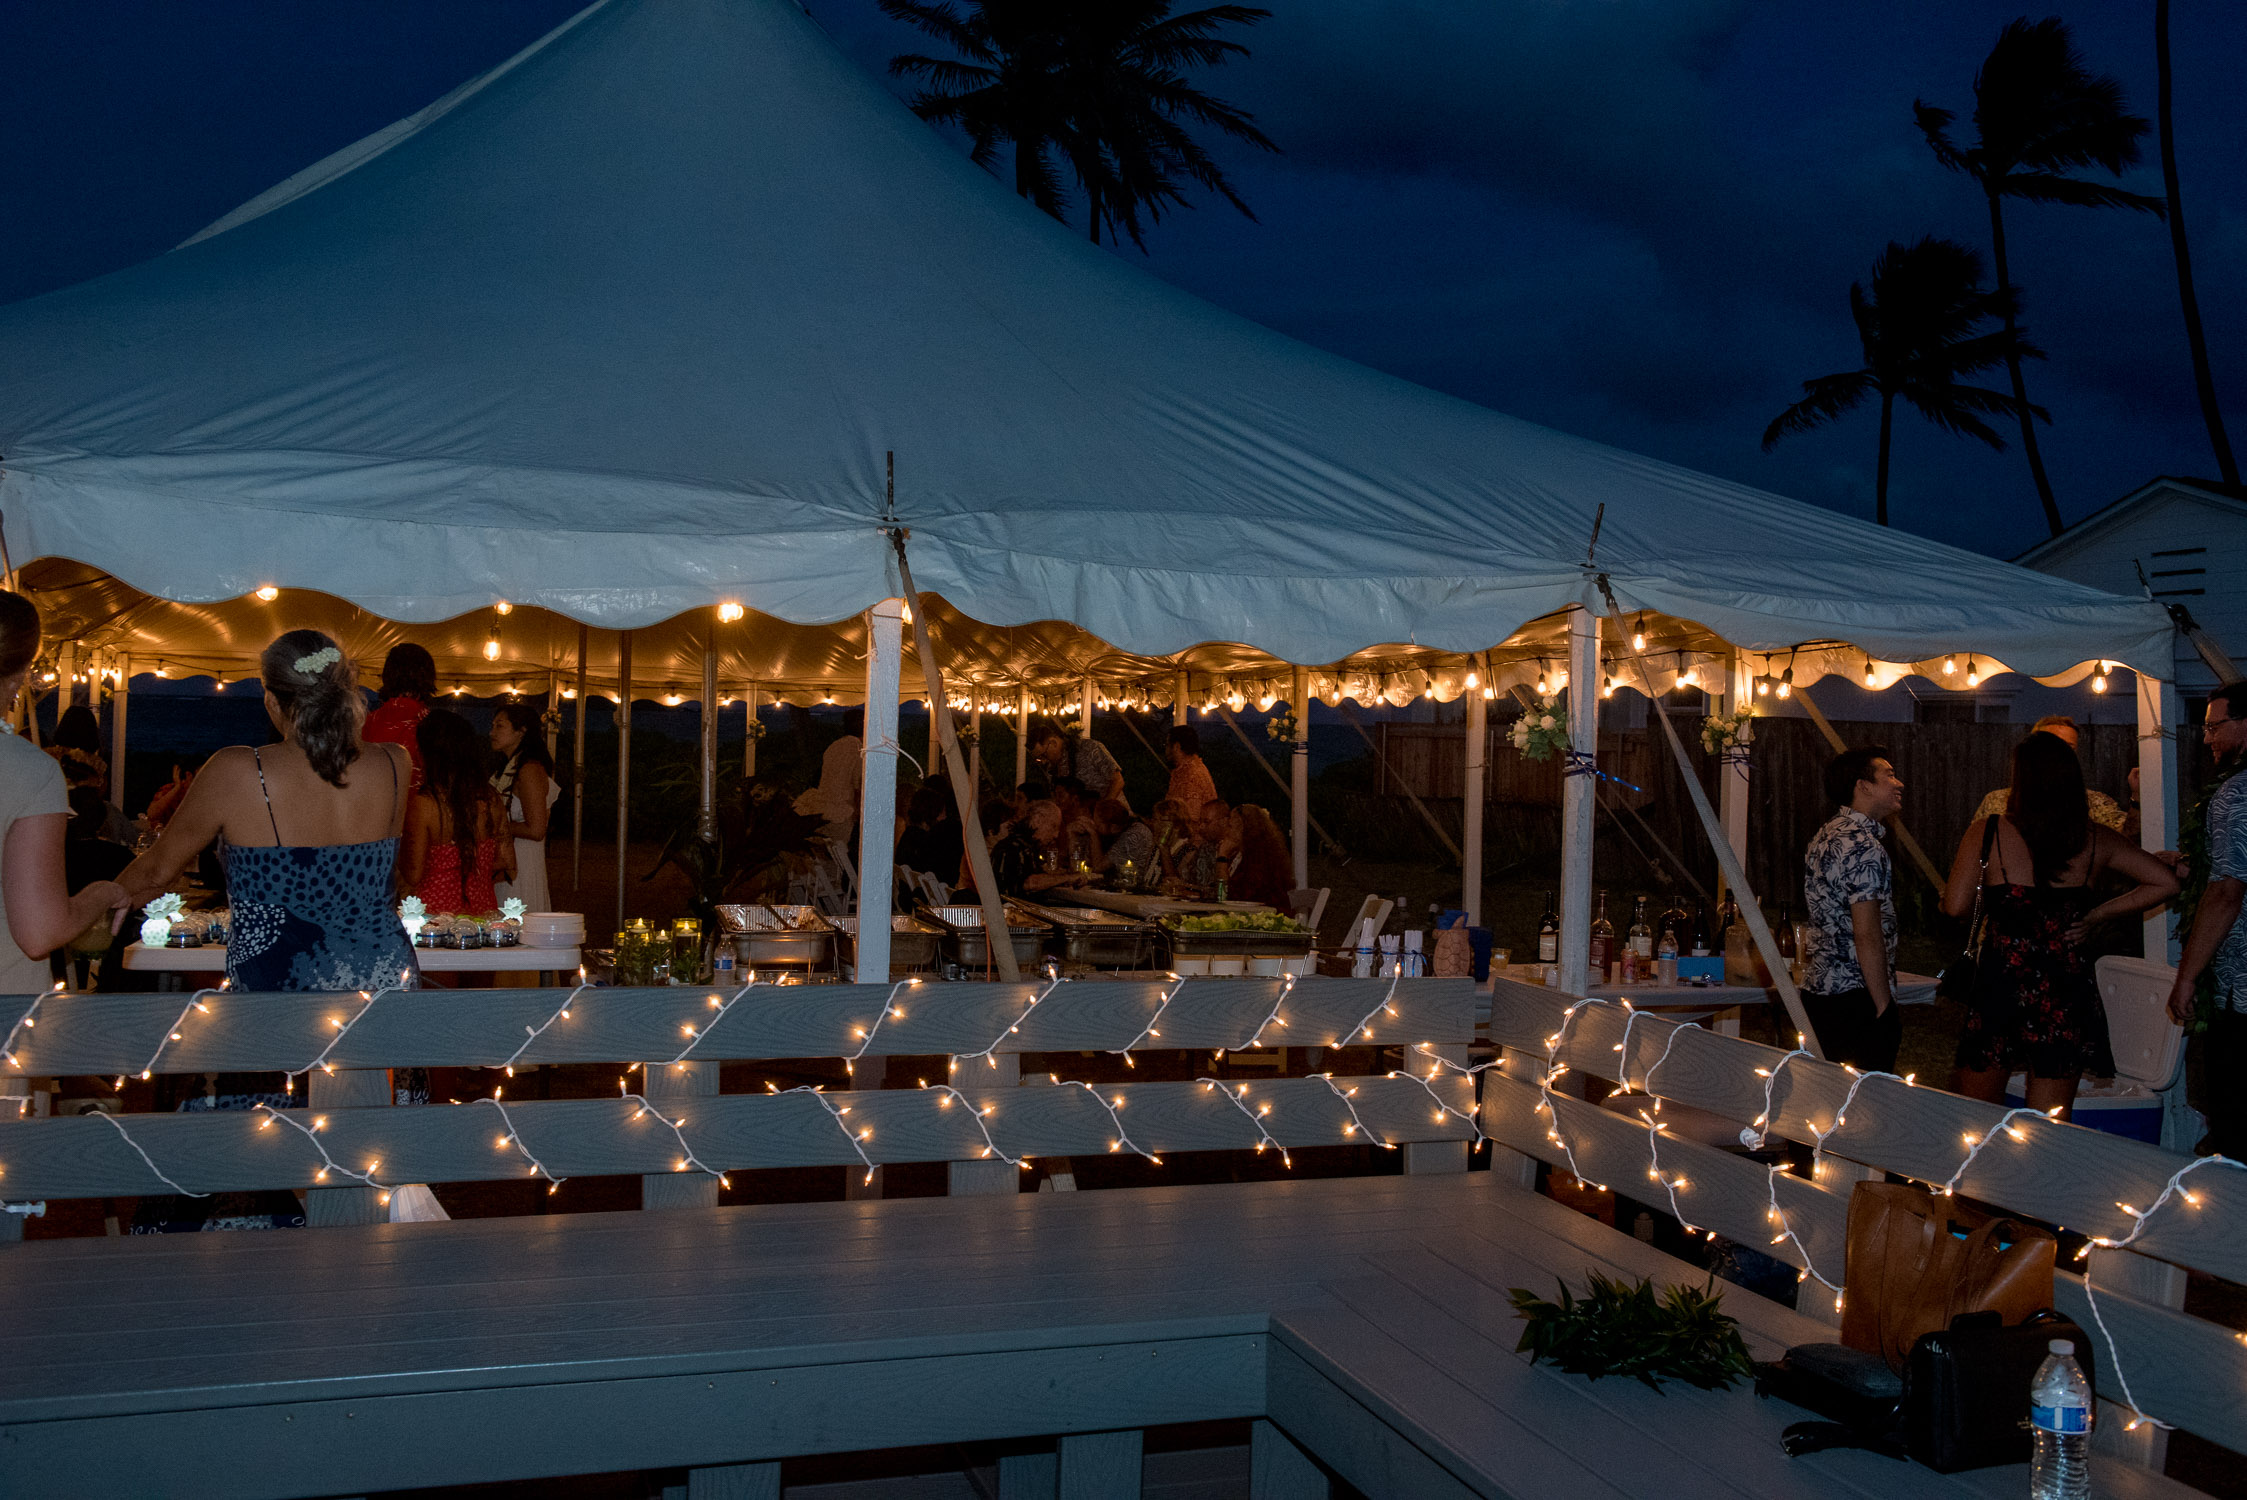 Lights on tent at evening reception